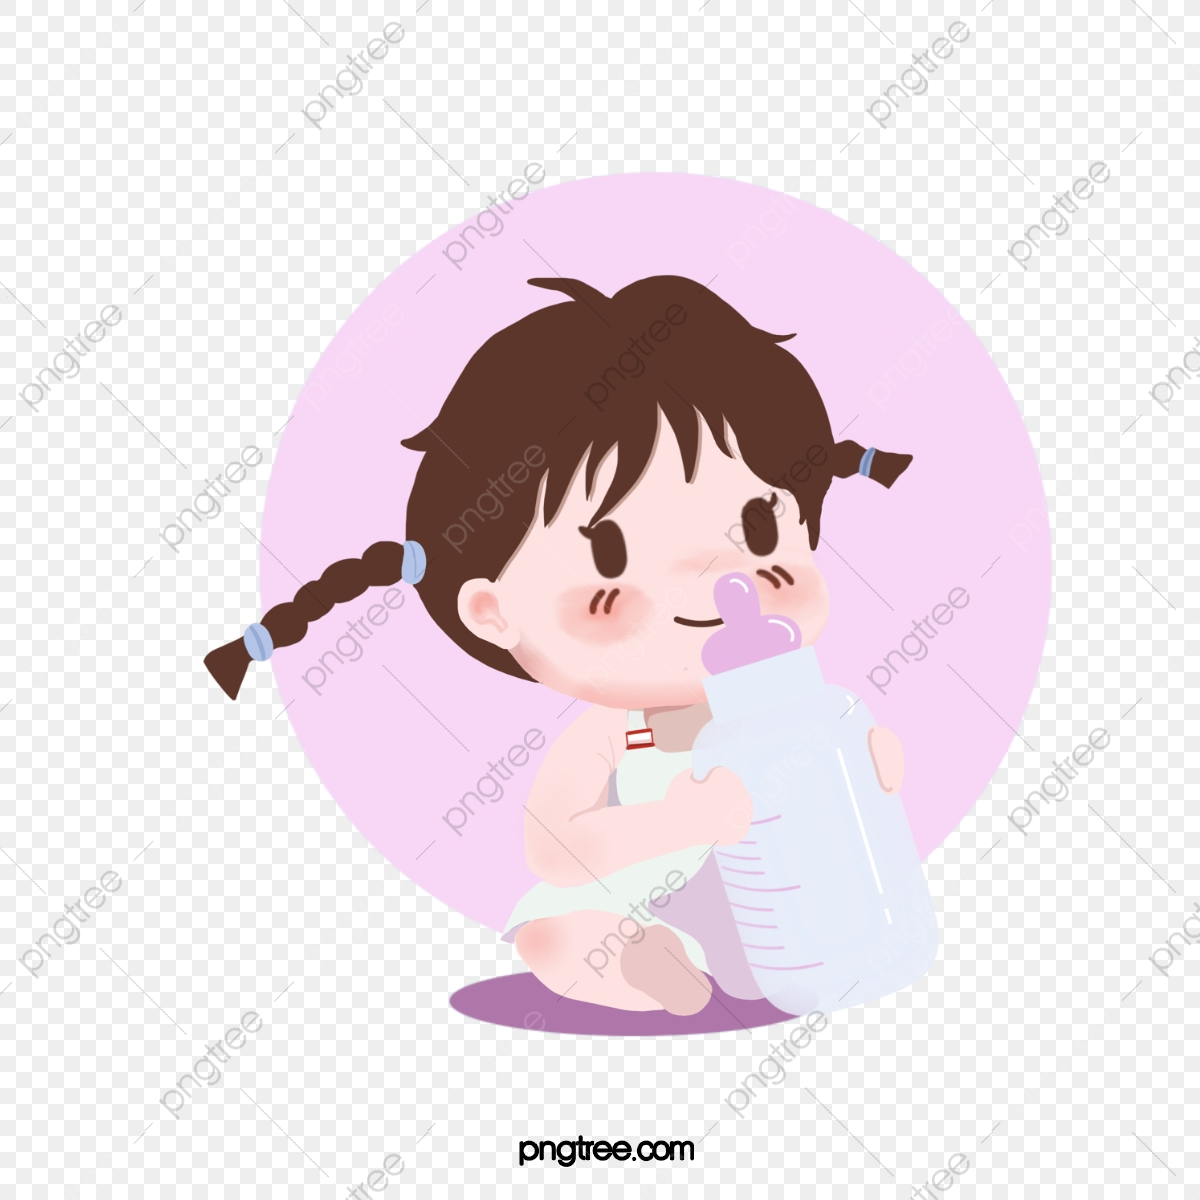 Hand Painted Cute Cartoon Baby Baby Baby Girl Baby Milk Cartoon Lovely Drink Milk Png Transparent Clipart Image And Psd File For Free Download